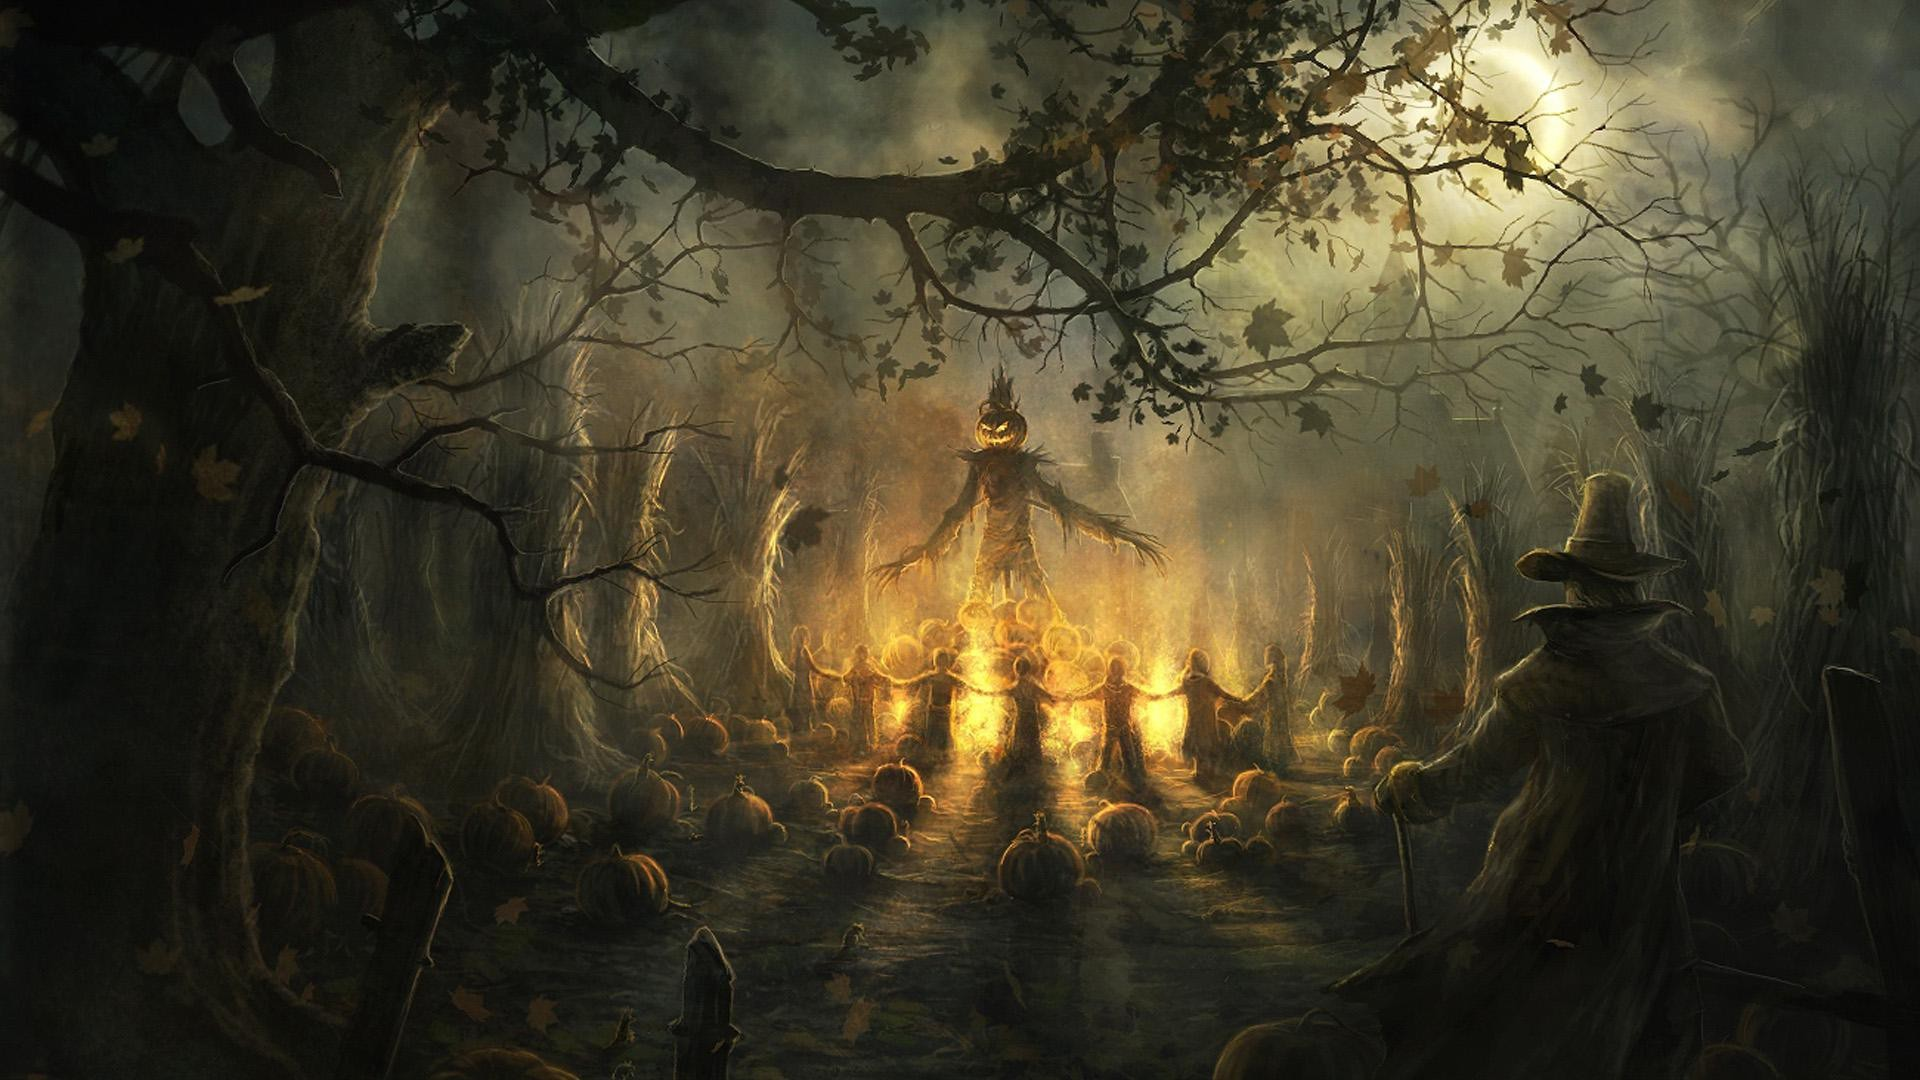 1920x1080 halloween screensavers and backgrounds | Scarecrow Halloween Android  Wallpapers 960x854 Mobile Hd Wallpaper | Tablet wallpapers | Pinterest |  Scarecrows